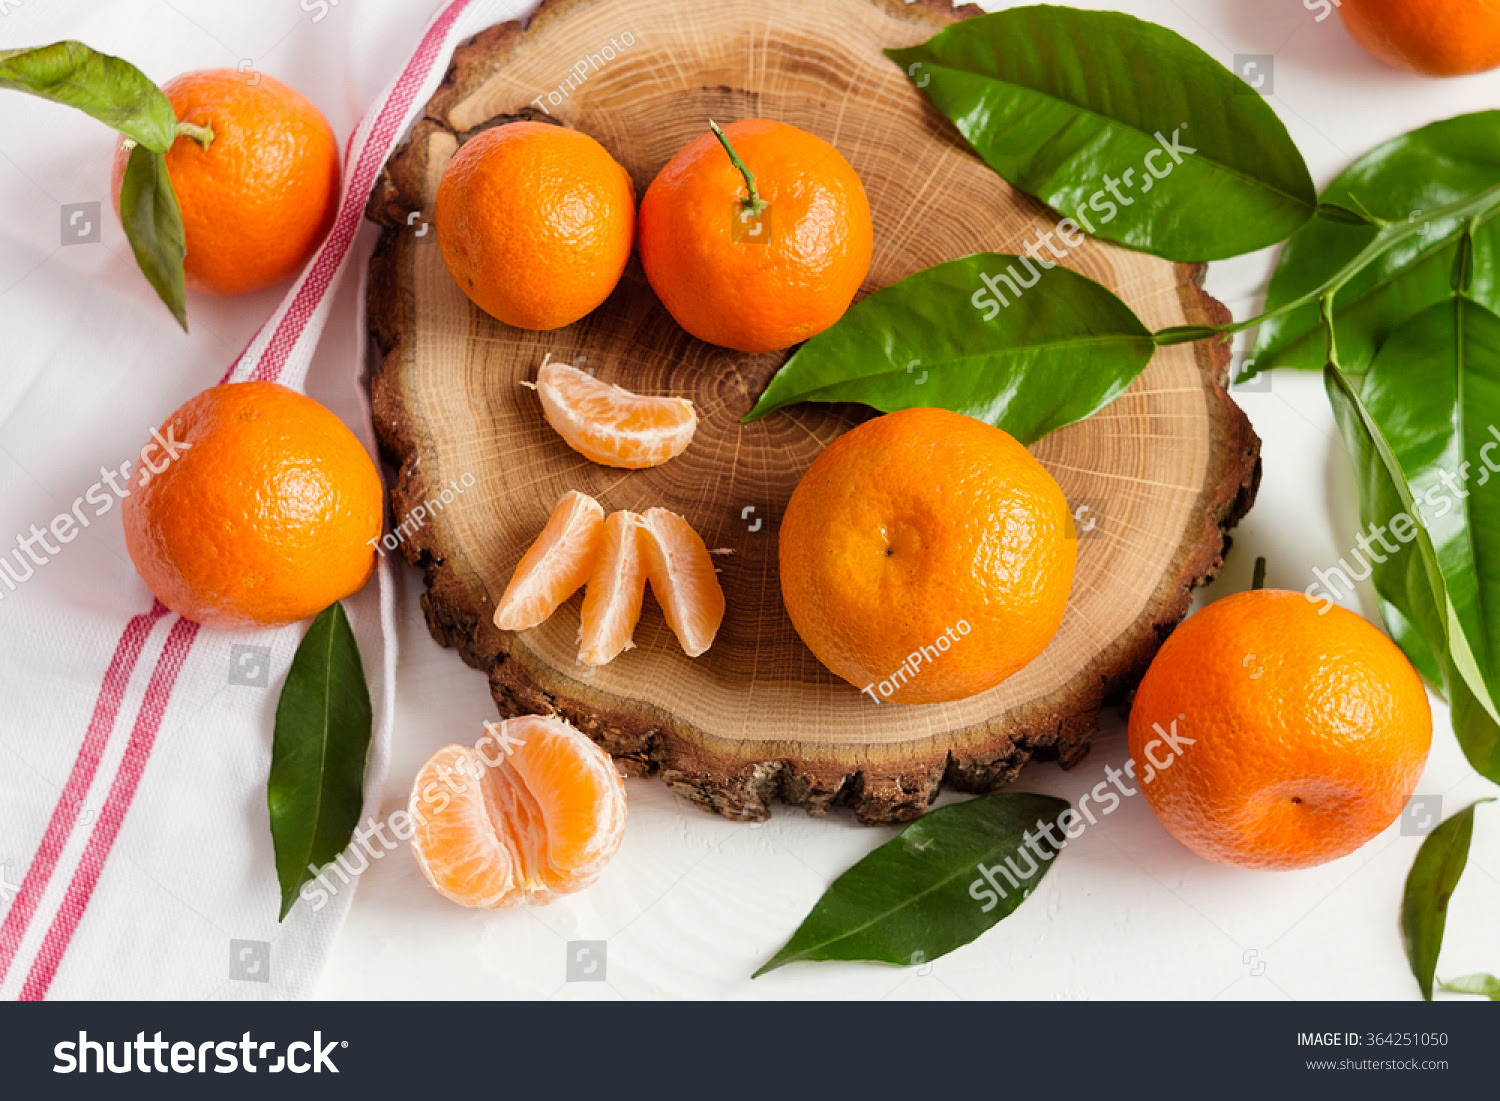 http://www.shutterstock.com/pic-364251050/stock-photo-fresh-mandarins-with-green-leaves-on-white-wooden-background-rustic-composition-with-shallow-focus.html